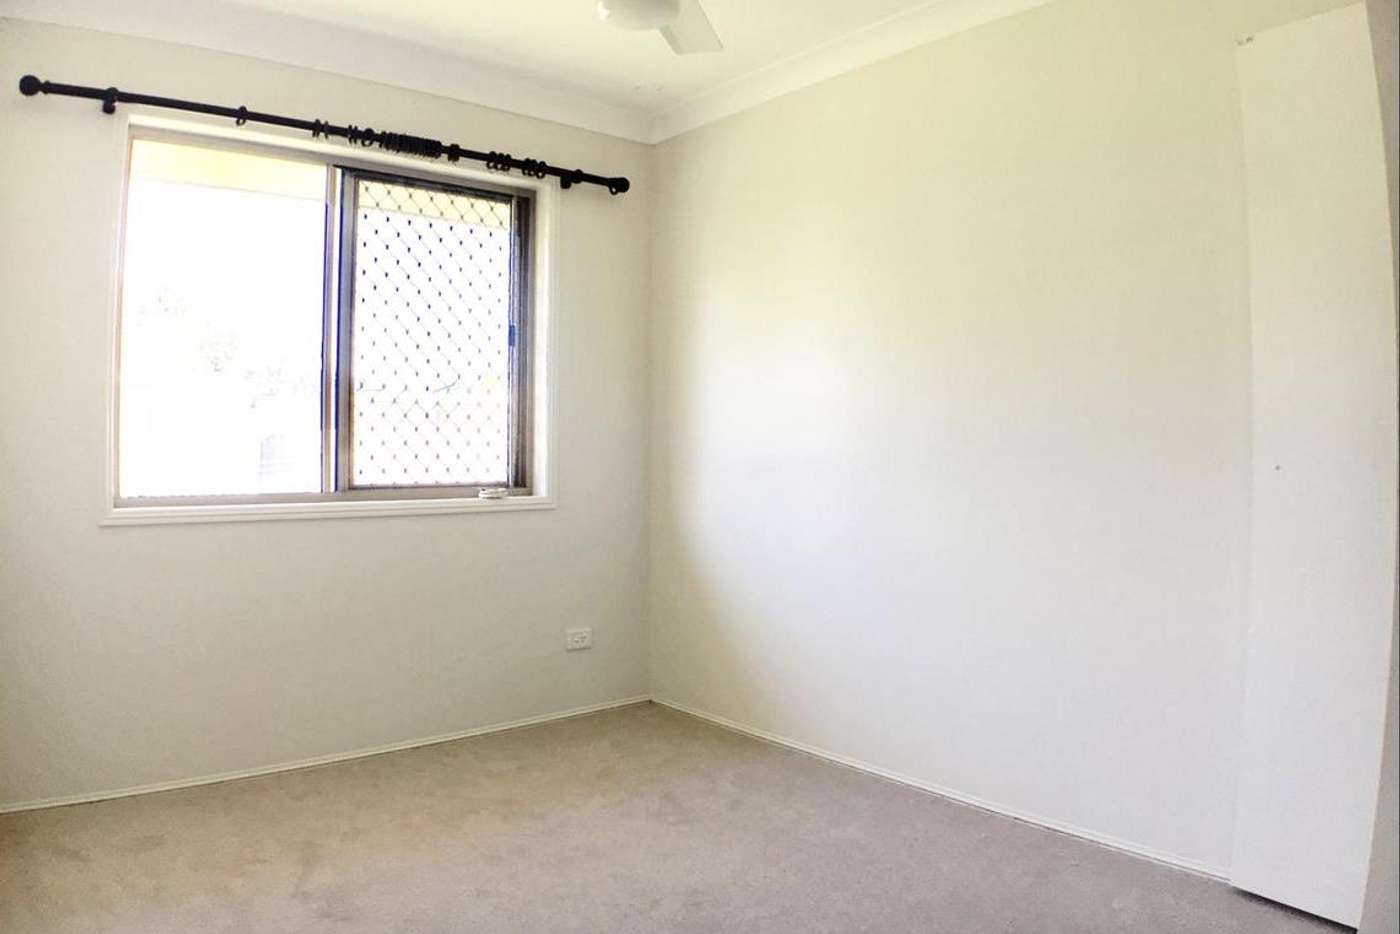 Sixth view of Homely house listing, 24 Jay Street, Marsden QLD 4132